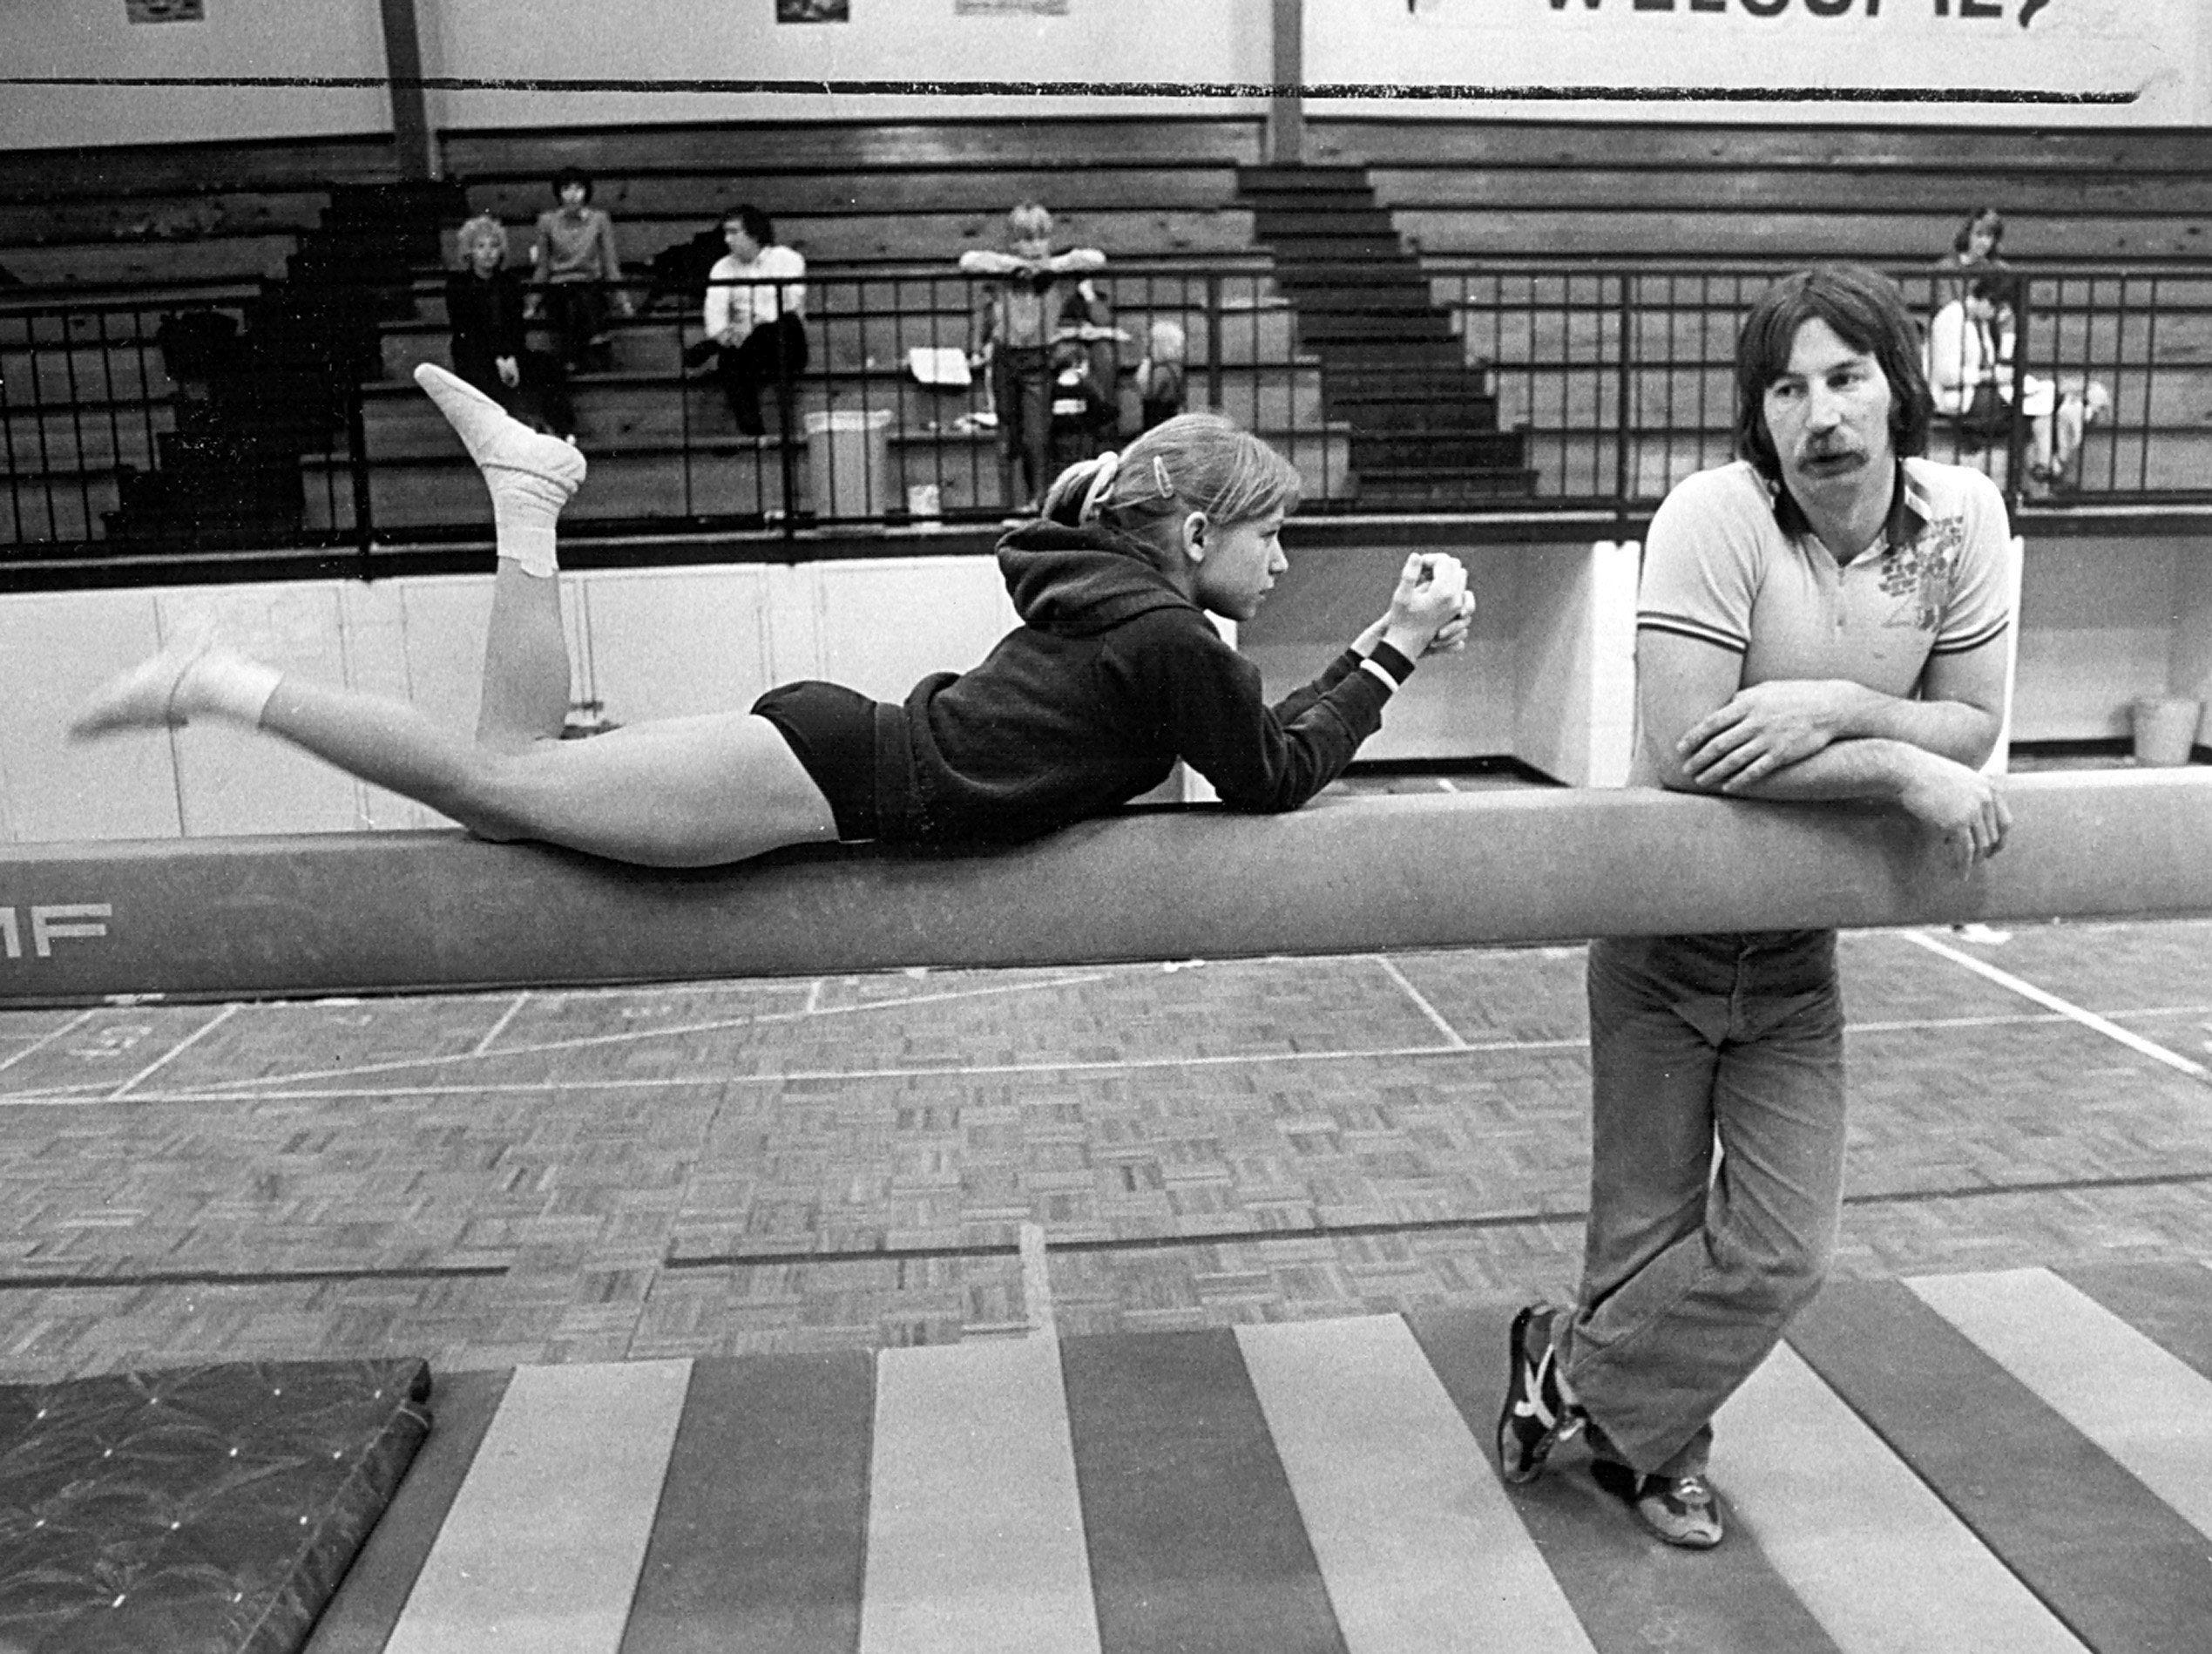 Gymnist Lucy Wener takes a break on the balance beam and relaxes with coach David Neel on 19 Mar 1981.